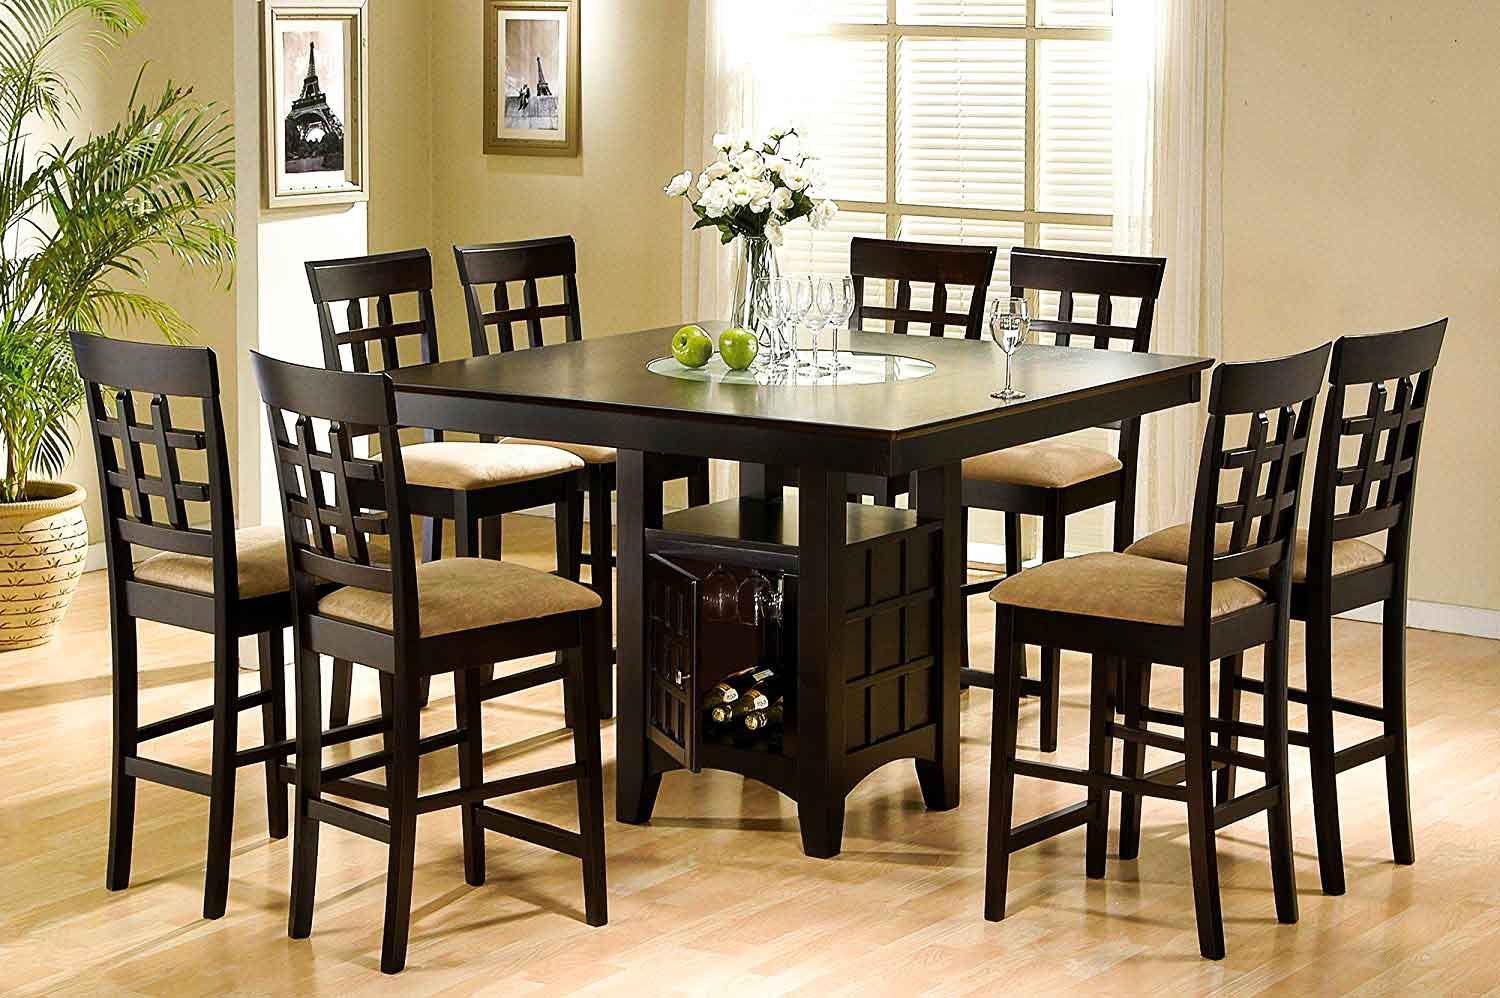 Top 9 Best Tall Kitchen Table Sets in 9 - TOP9PRO